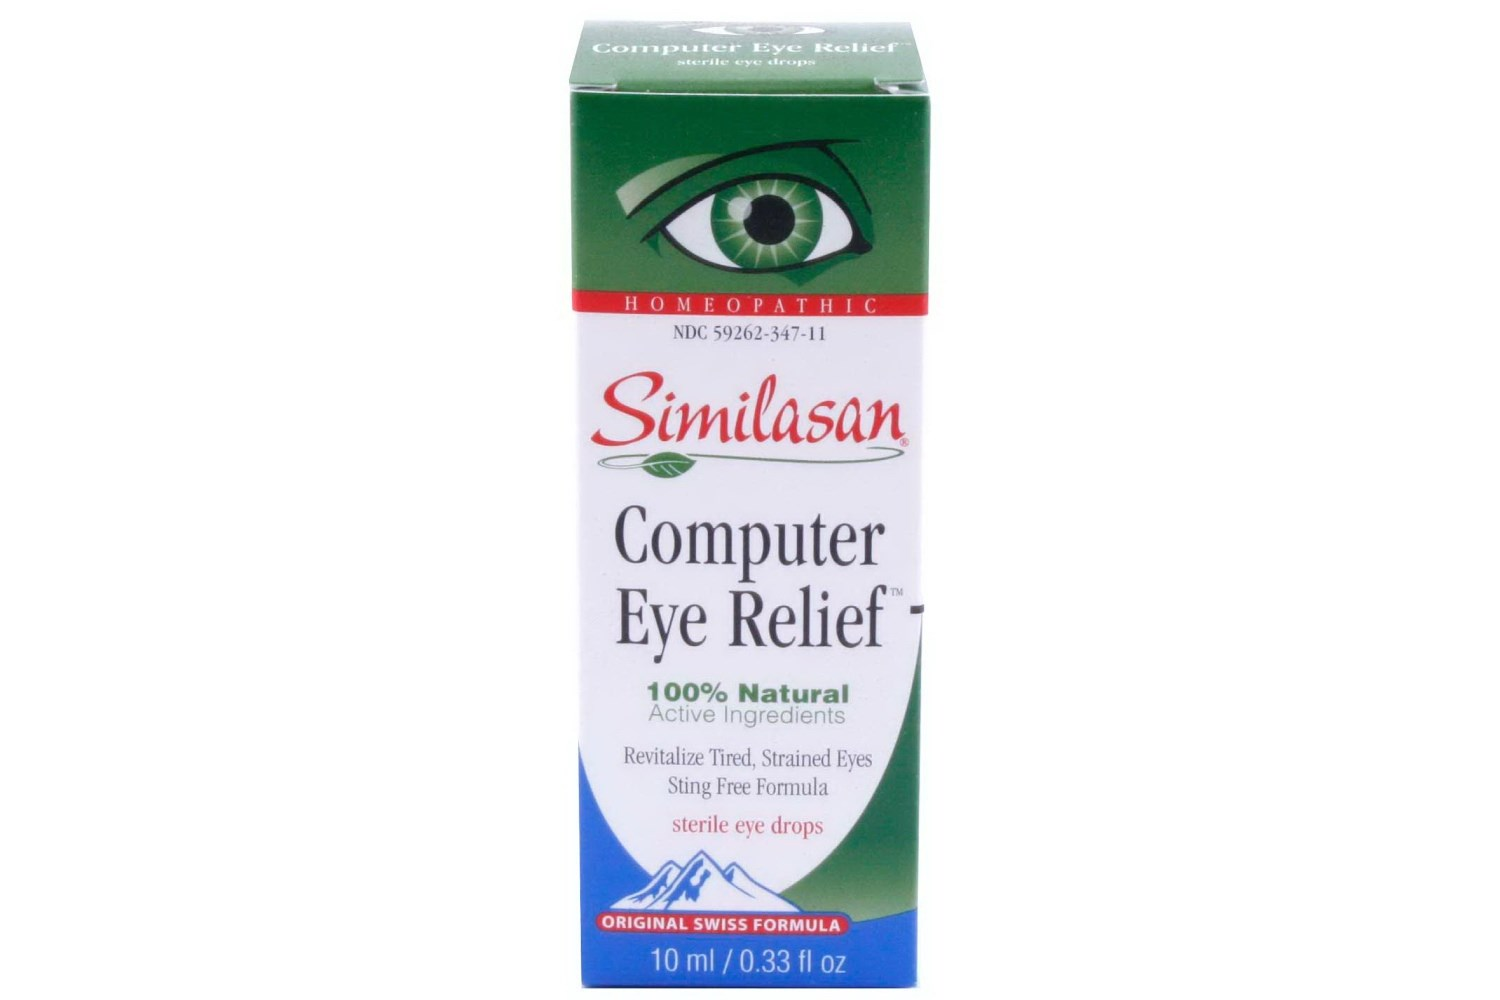 Similasan Computer Eyes Relief Drops 33 fl oz